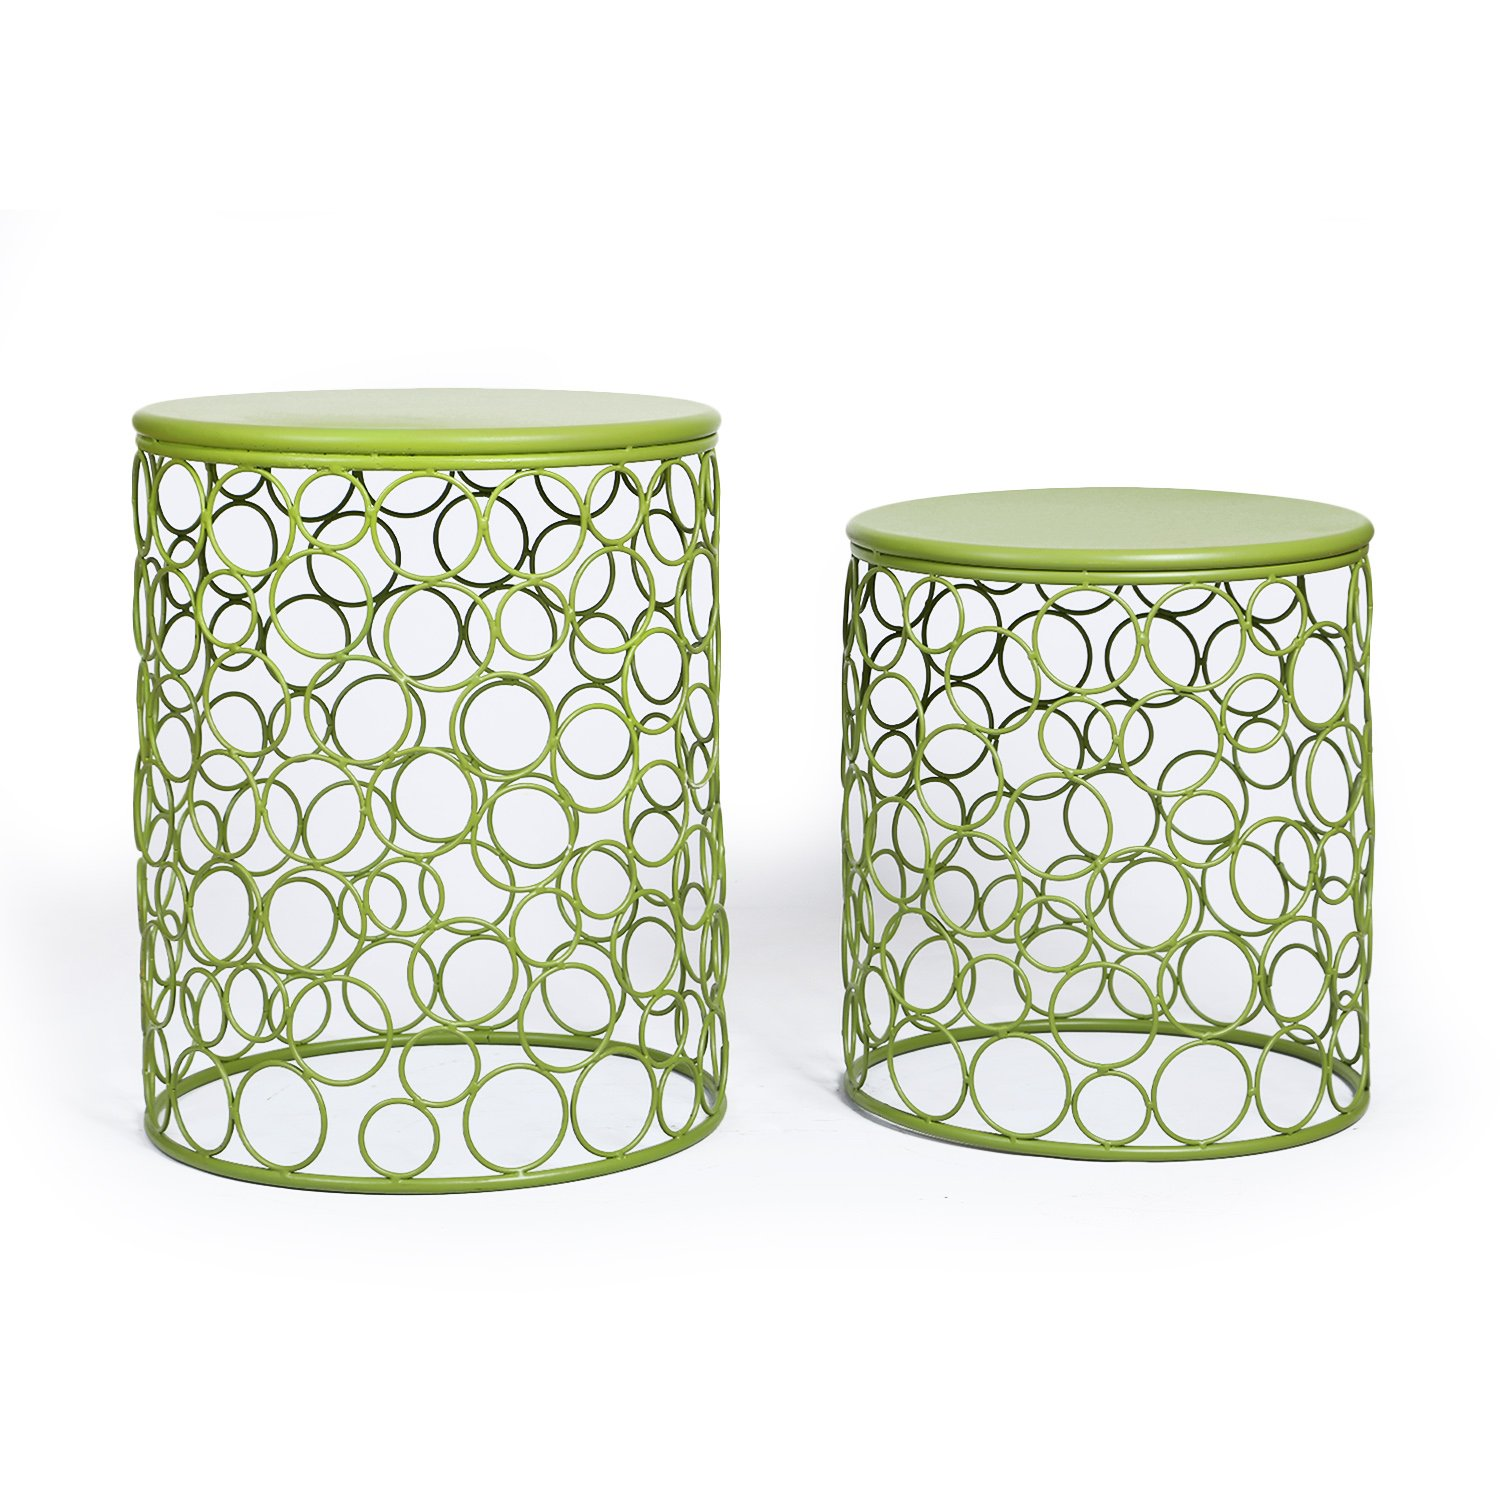 Adeco Home Garden Accents Circle Wired Round Iron Metal Nesting Stool Side End Table Plant Stand, Bubble Pattern, for Indoor Outdoor, Olive Drab Green, Set of Two by Adeco